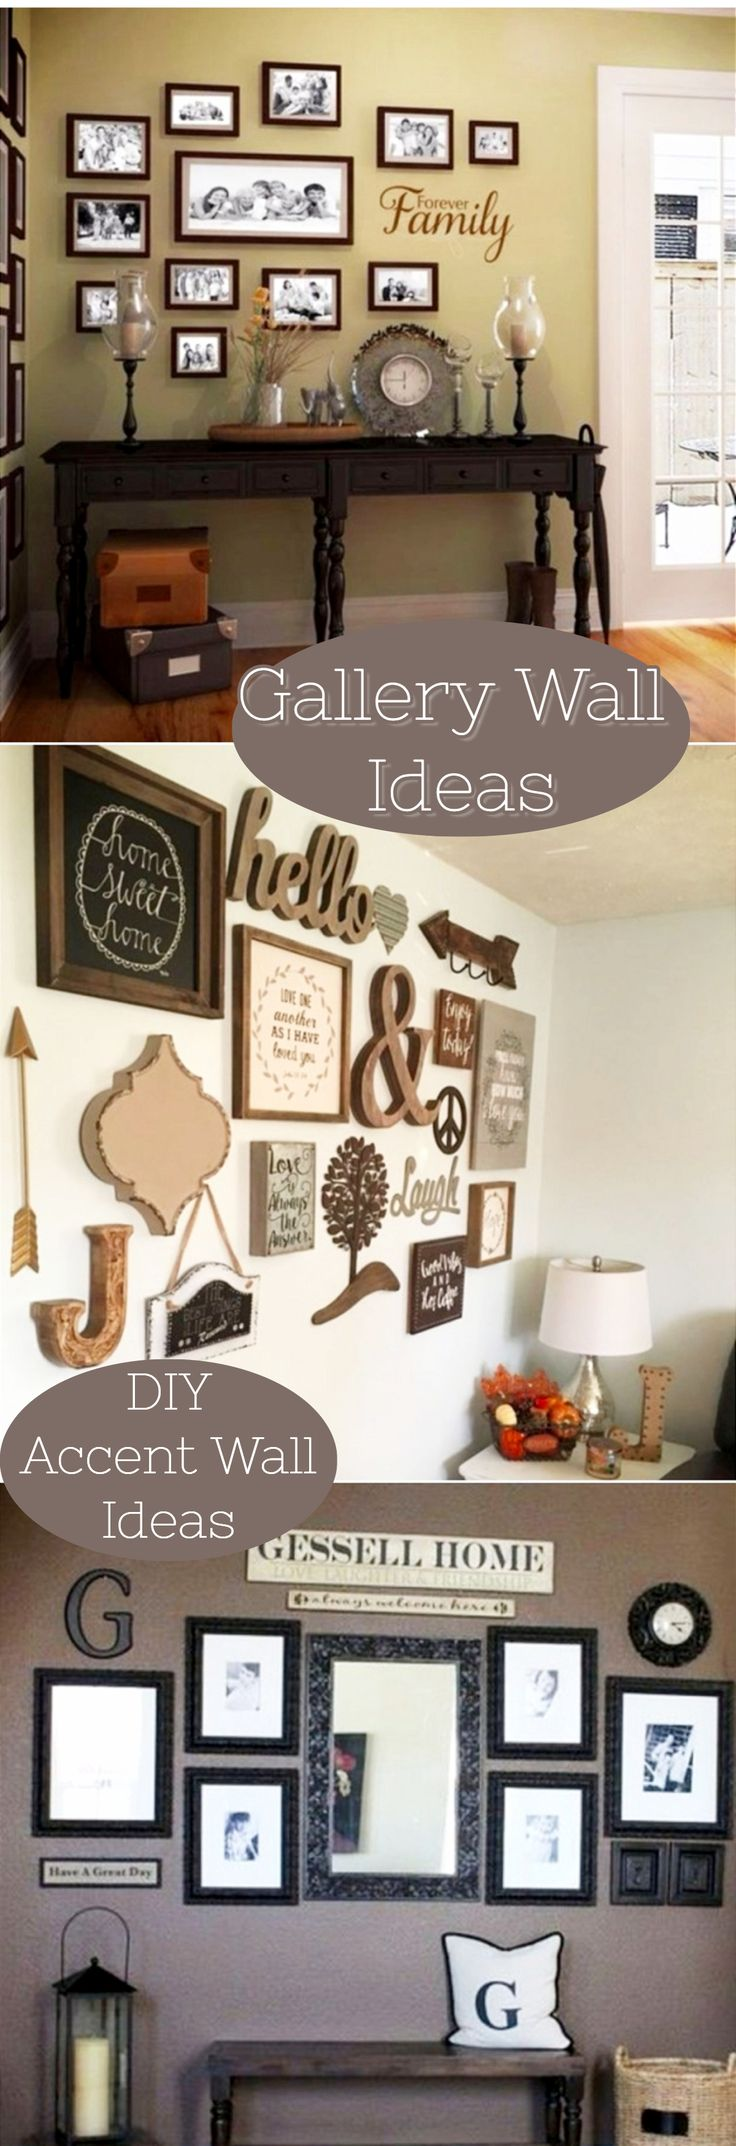 Best 25 Accent Wall Colors Ideas On Pinterest: Best 25+ Accent Walls Ideas On Pinterest